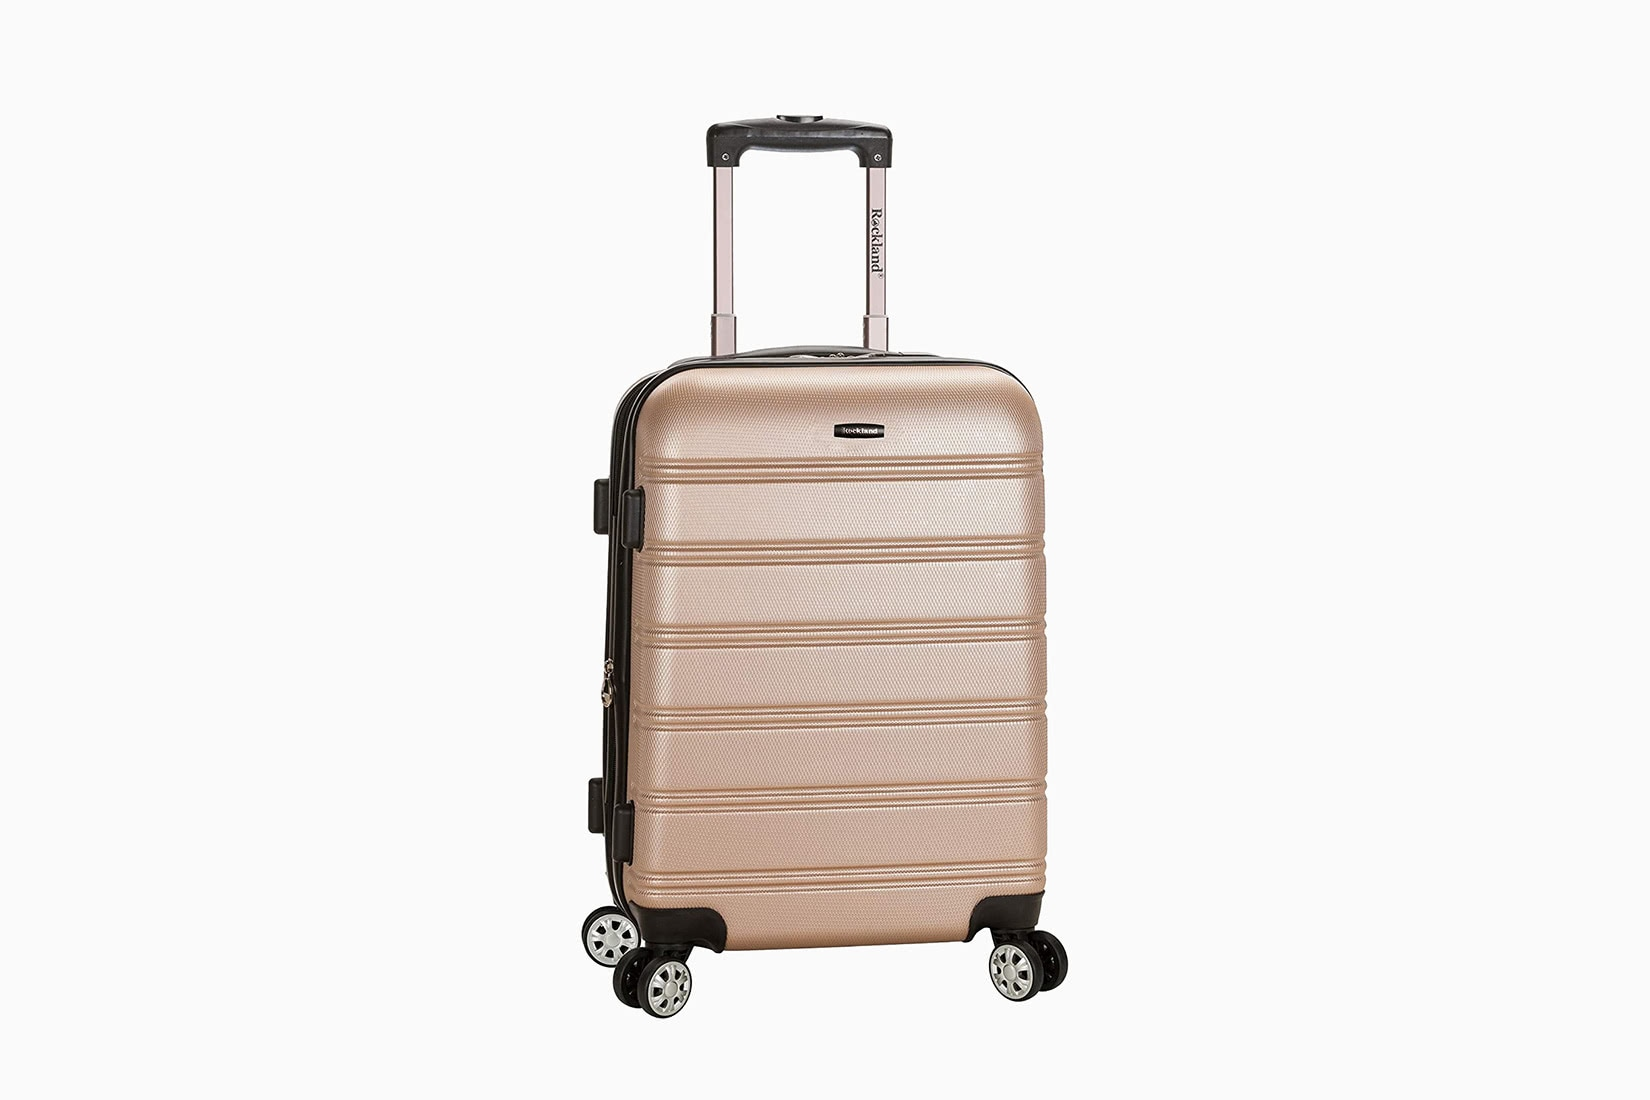 best carry-on suitcase travel value rockland melbourne - Luxe Digital